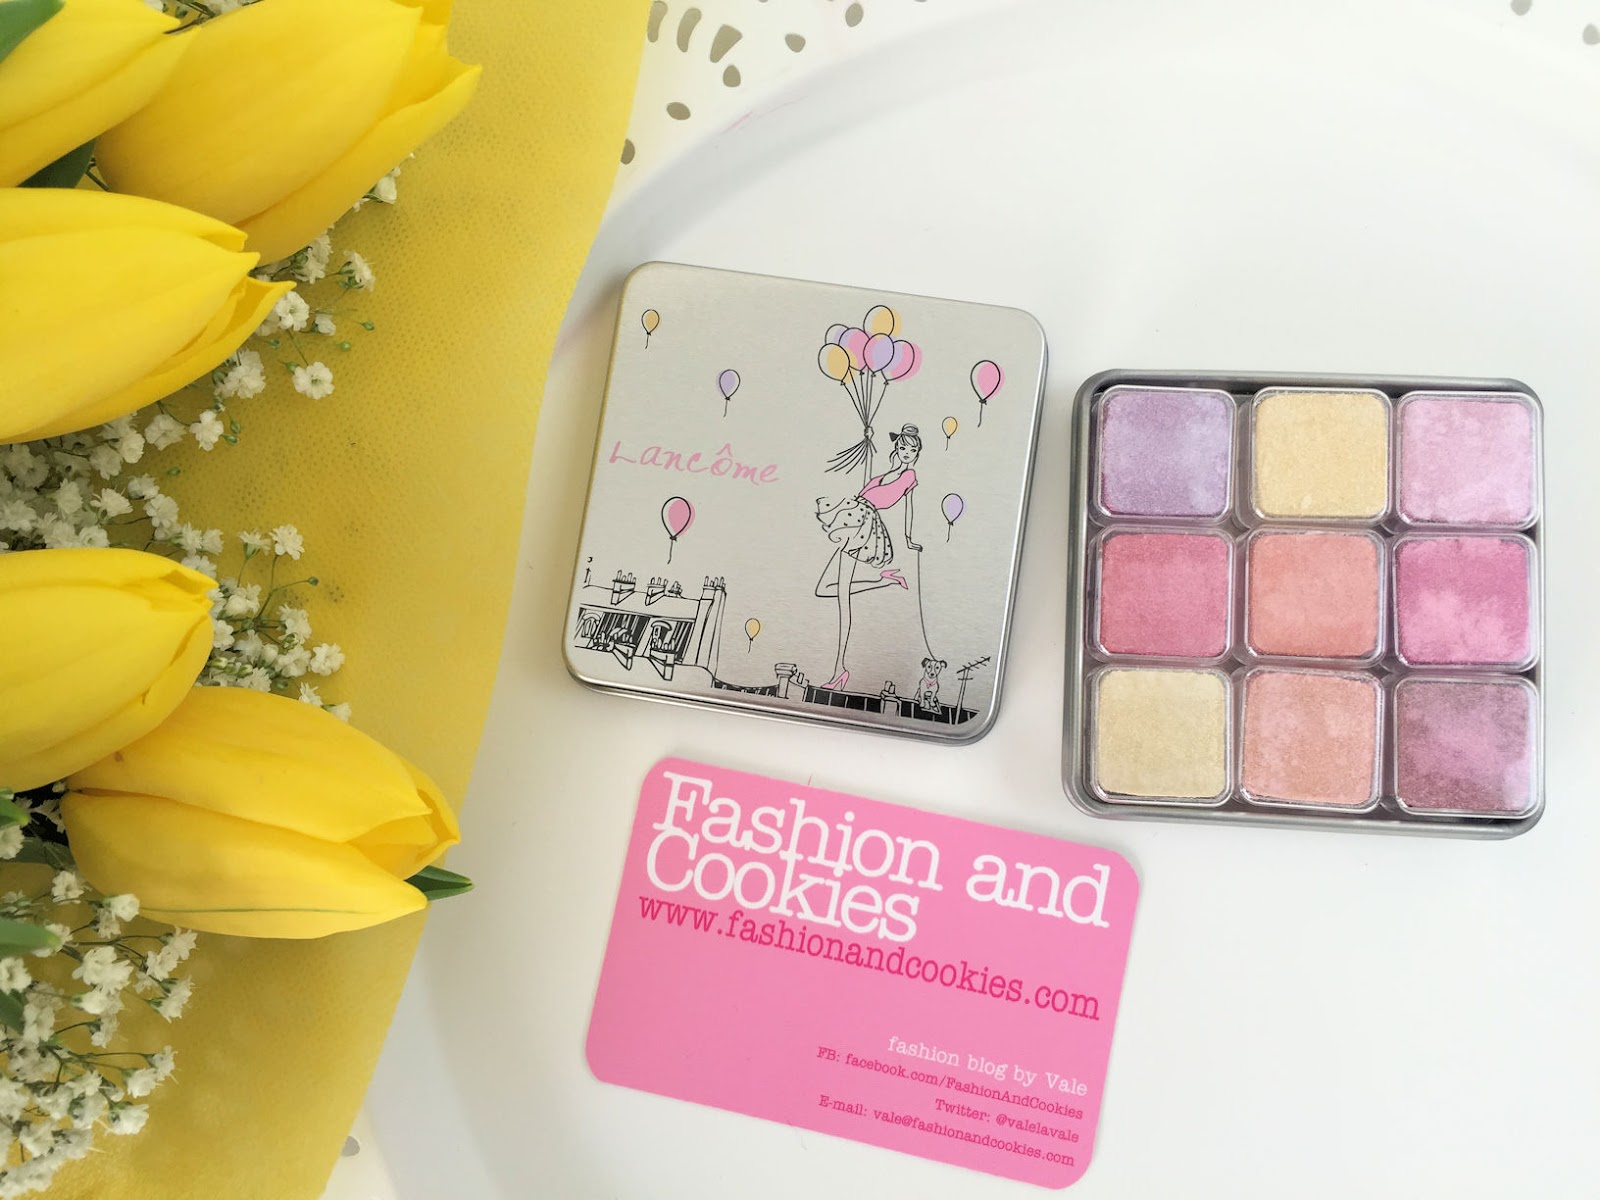 Lancôme makeup collection for Spring 2016 My Parisian Pastels cube review on Fashion and Cookies beauty blog, beauty blogger